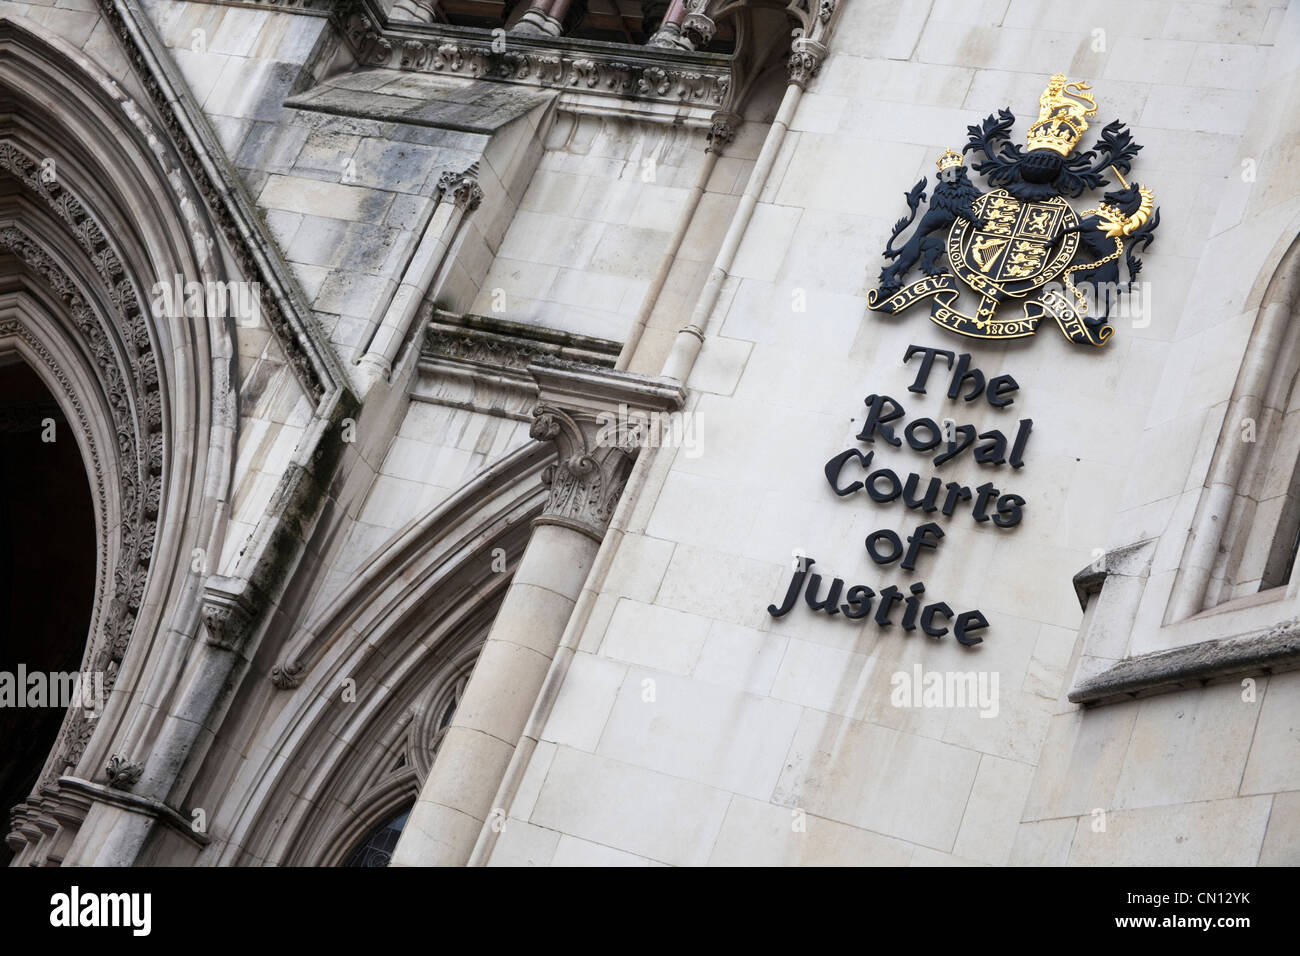 Royal Courts of Justice, London, UK - Stock Image